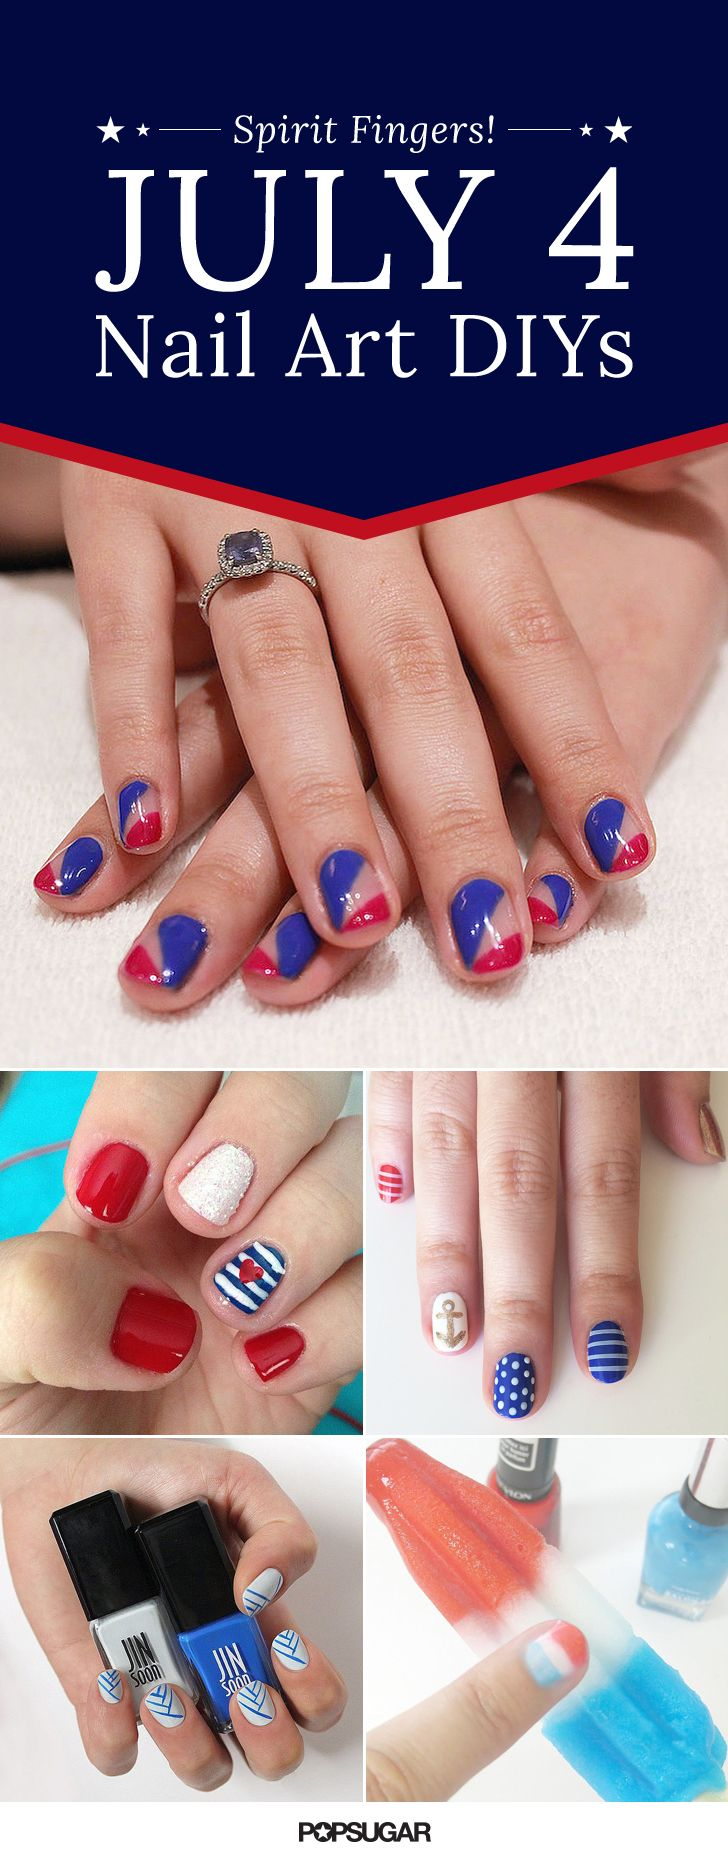 These July 4 nail art ideas are perfectly patriotic! Try one of these easy nail DIYs this Summer.